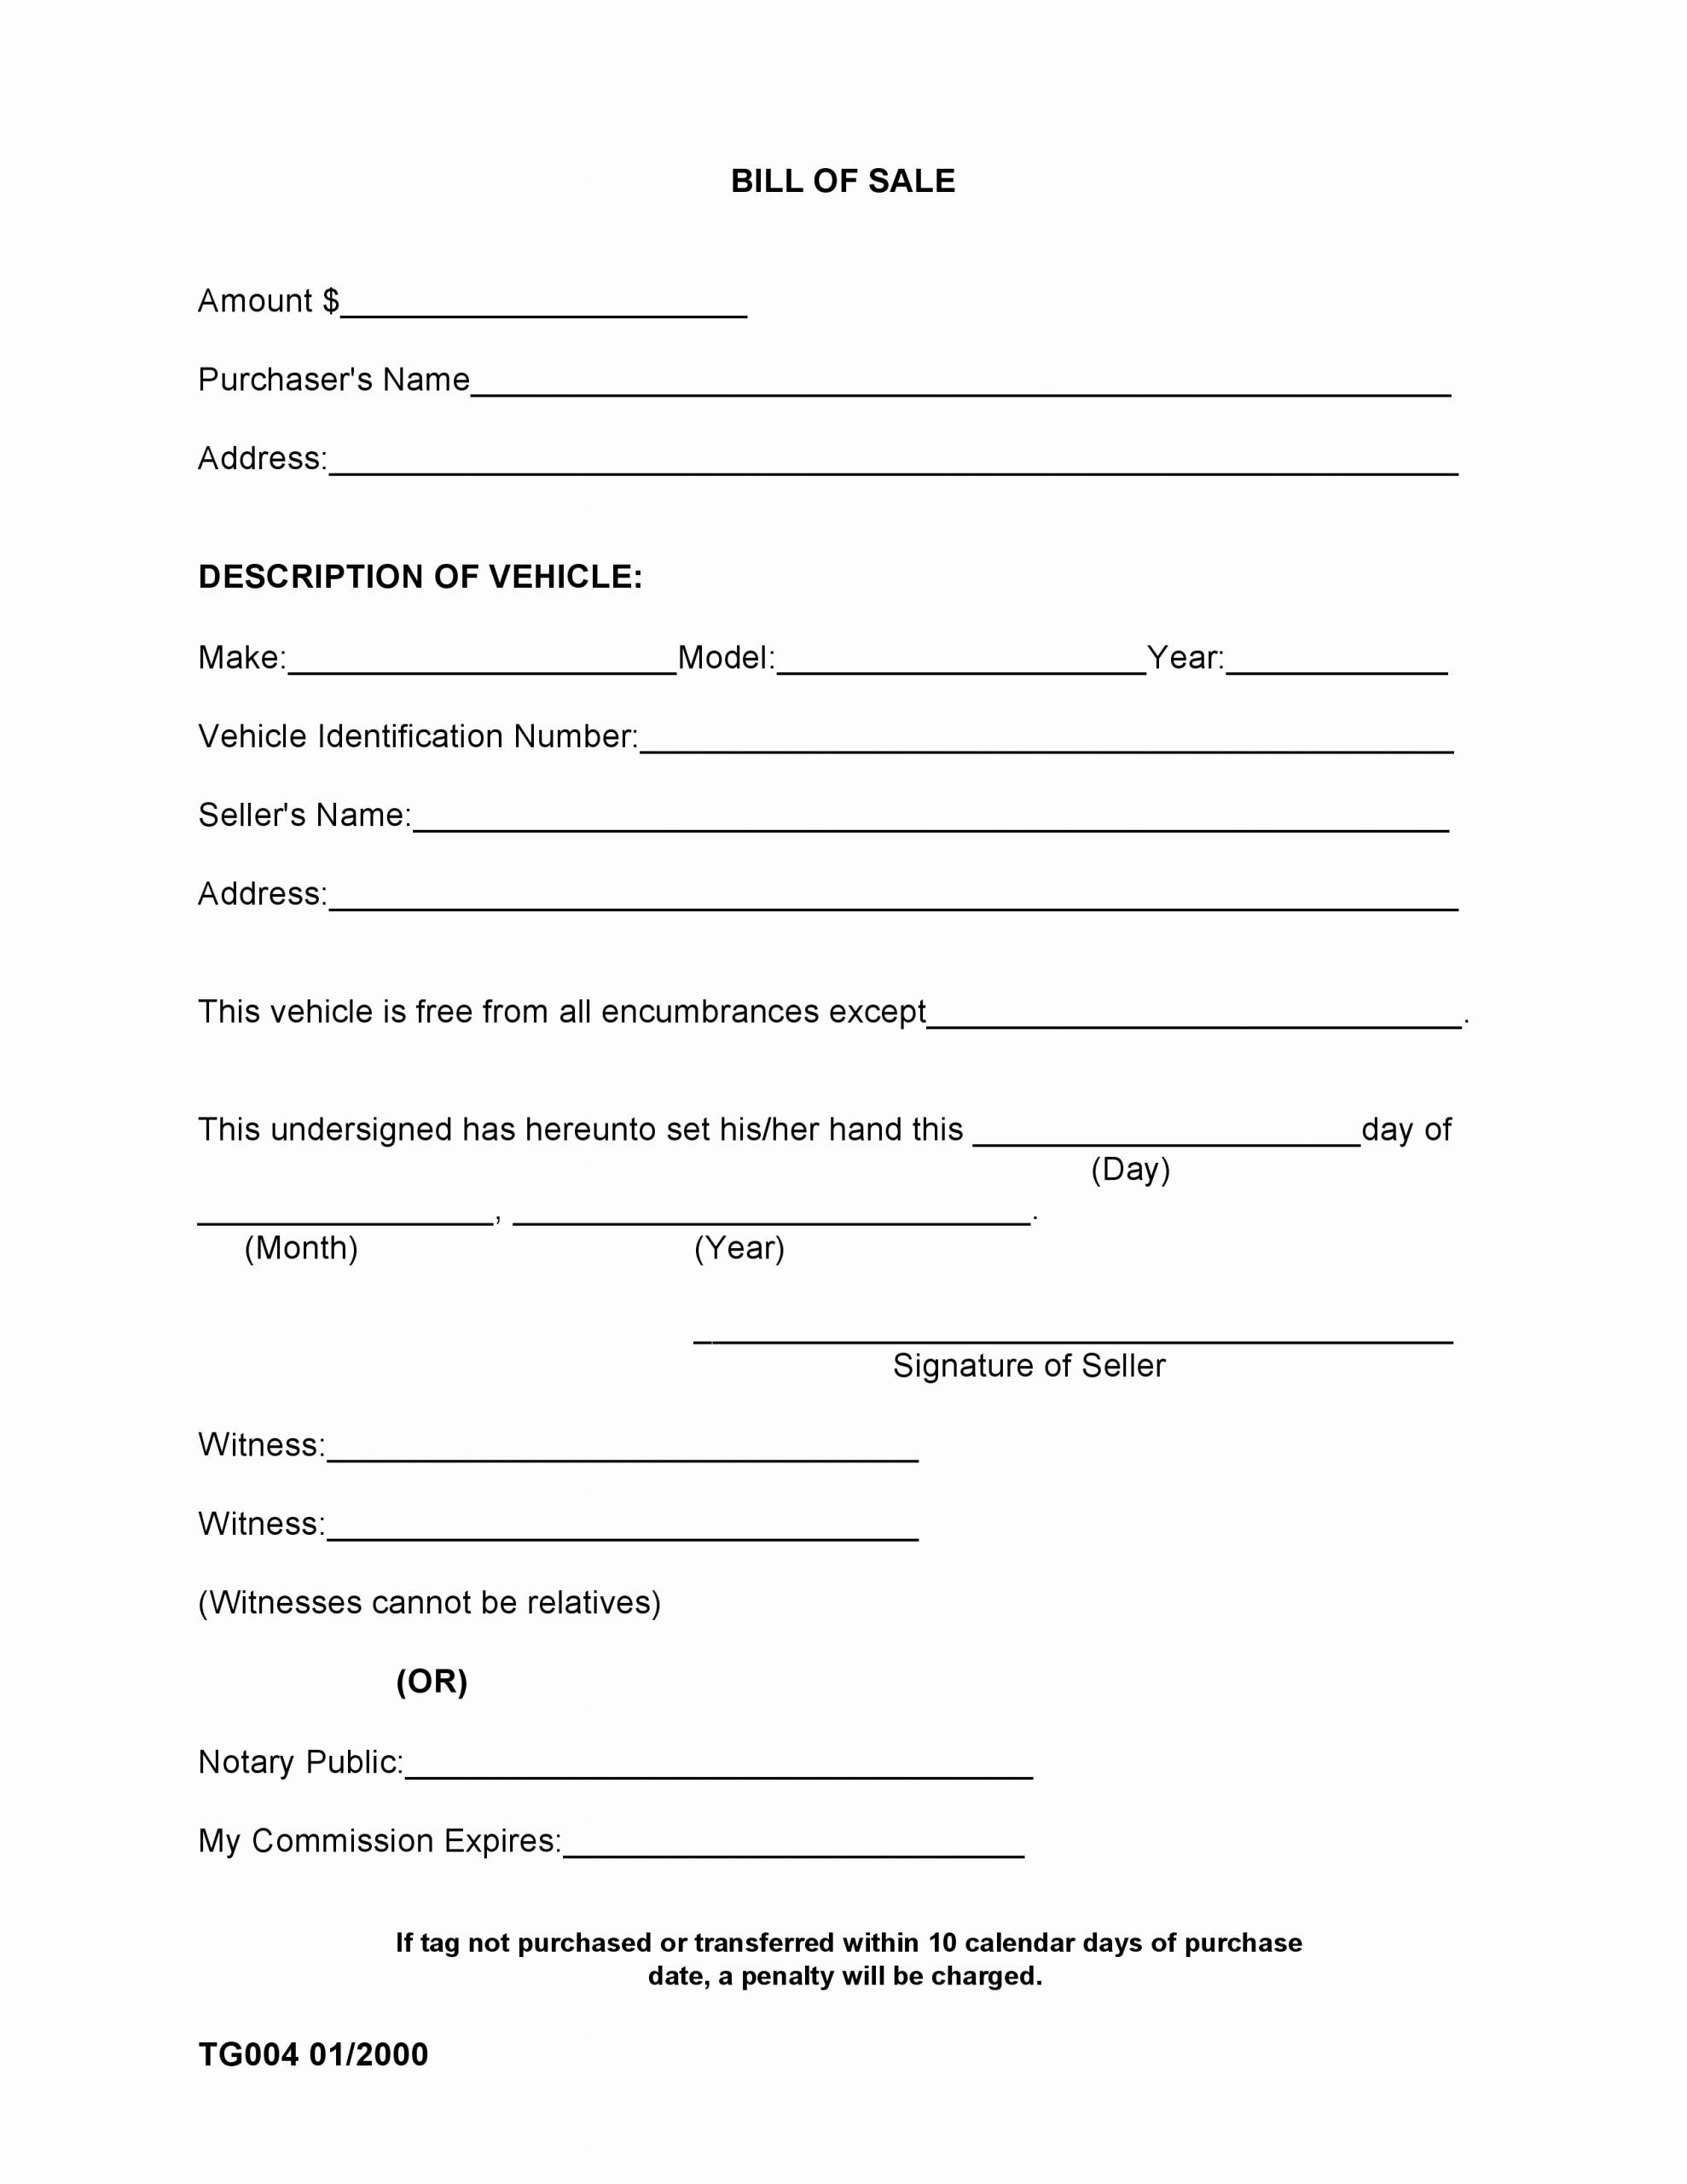 Auto Bill Of Sale Alabama Beautiful Free Madison County Alabama Bill Of Sale form Pdf